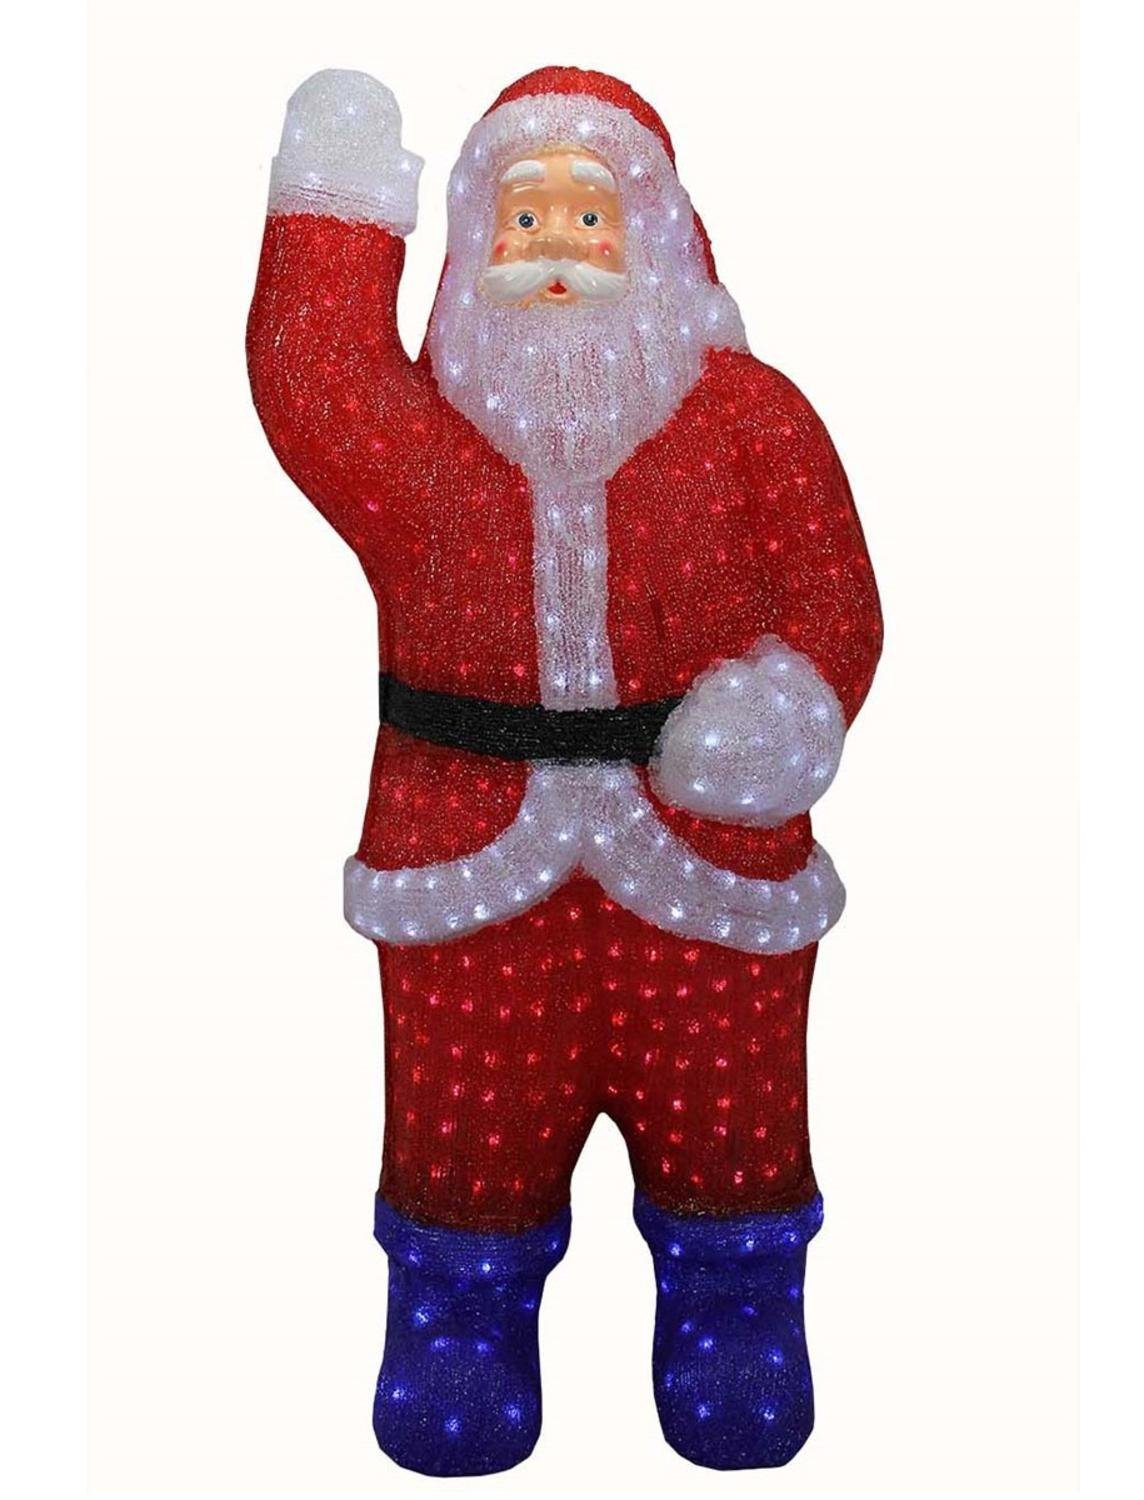 Northlight Lighted Commercial Grade Acrylic Santa Claus Christmas Display Decoration, 3' , Red